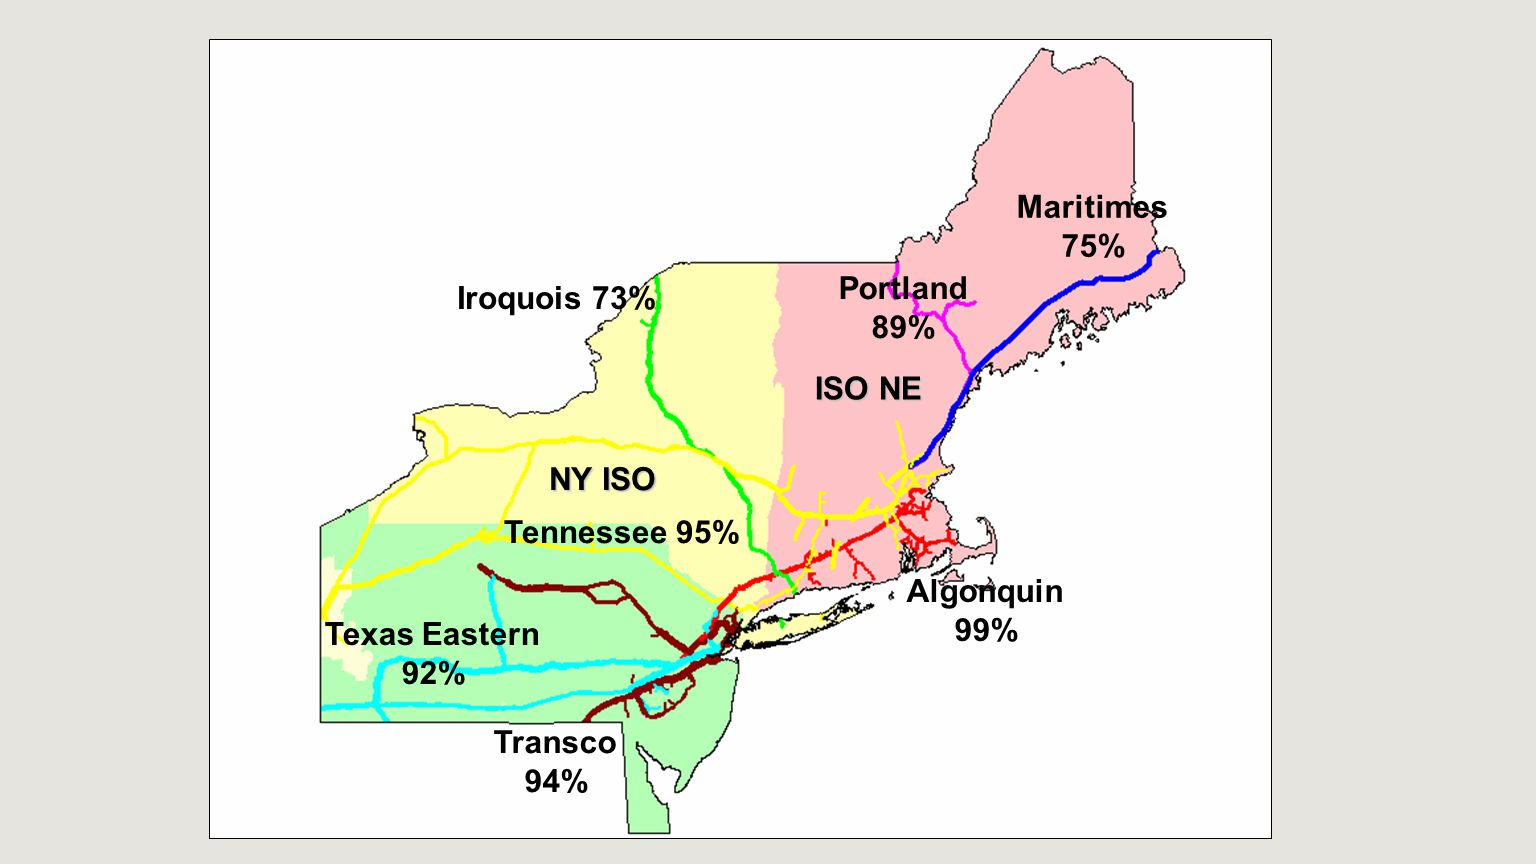 Iroquois 73% Maritimes 75% Tennessee 95% Algonquin 99% Texas Eastern 92% Transco 94% NY ISO ISO NE Portland 89%